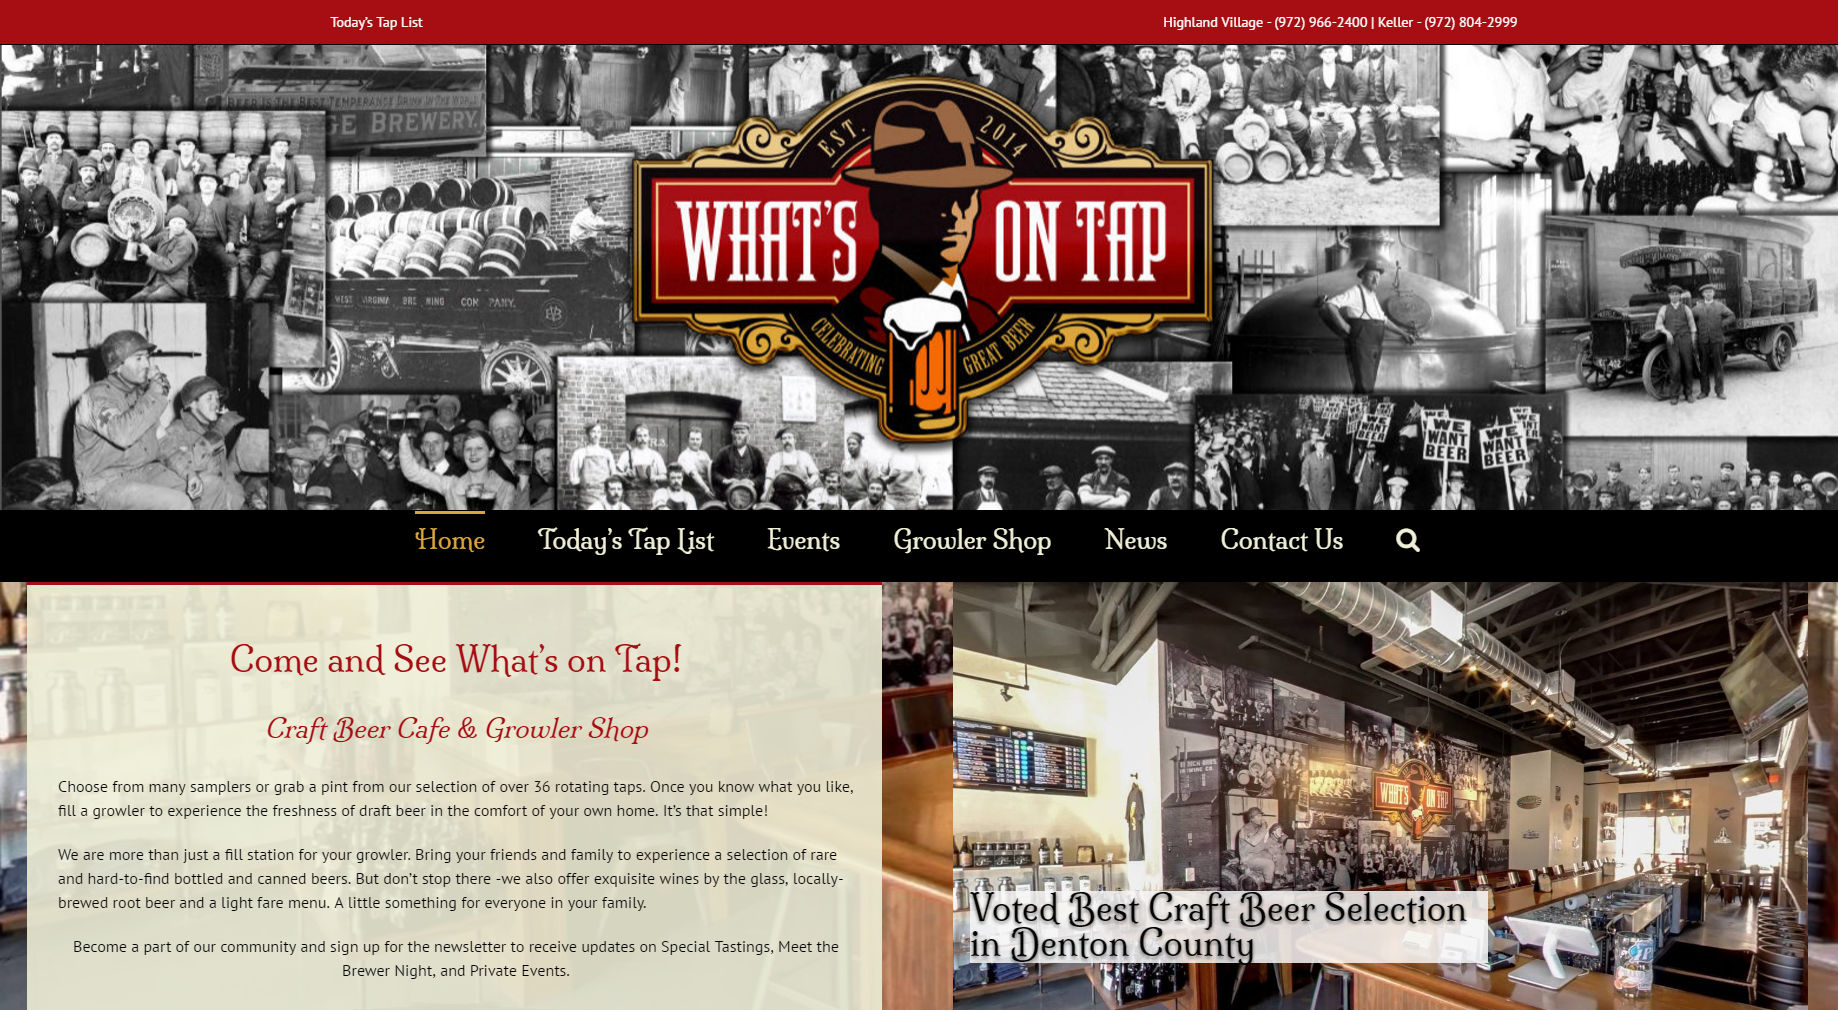 What's On Tap | Keller Website Design